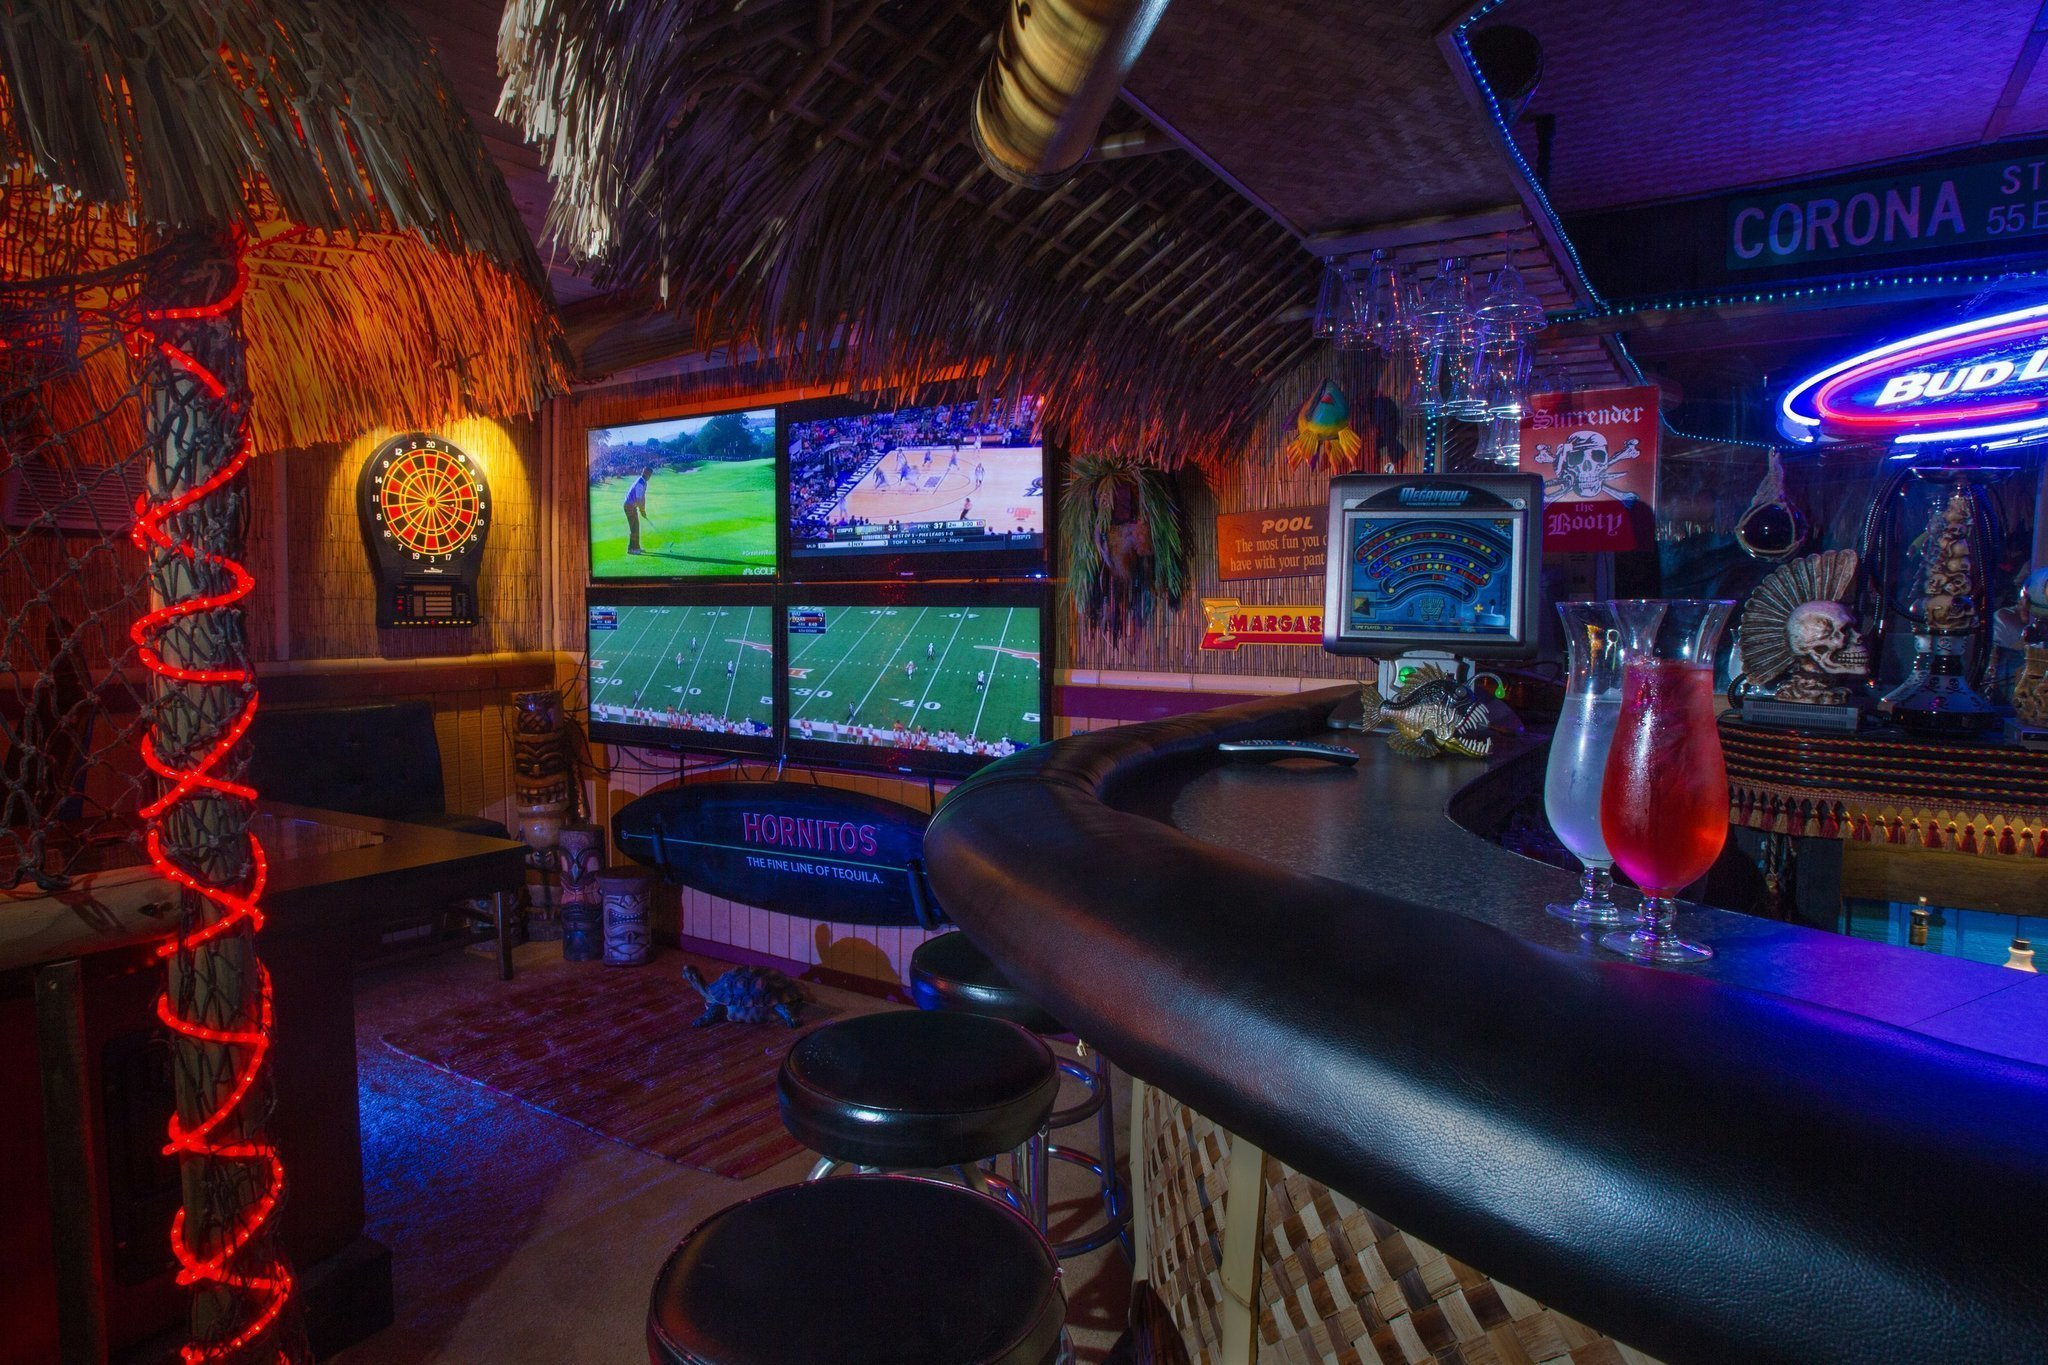 Man Caves Utah : Many fans now prefer man cave to the stadium experience